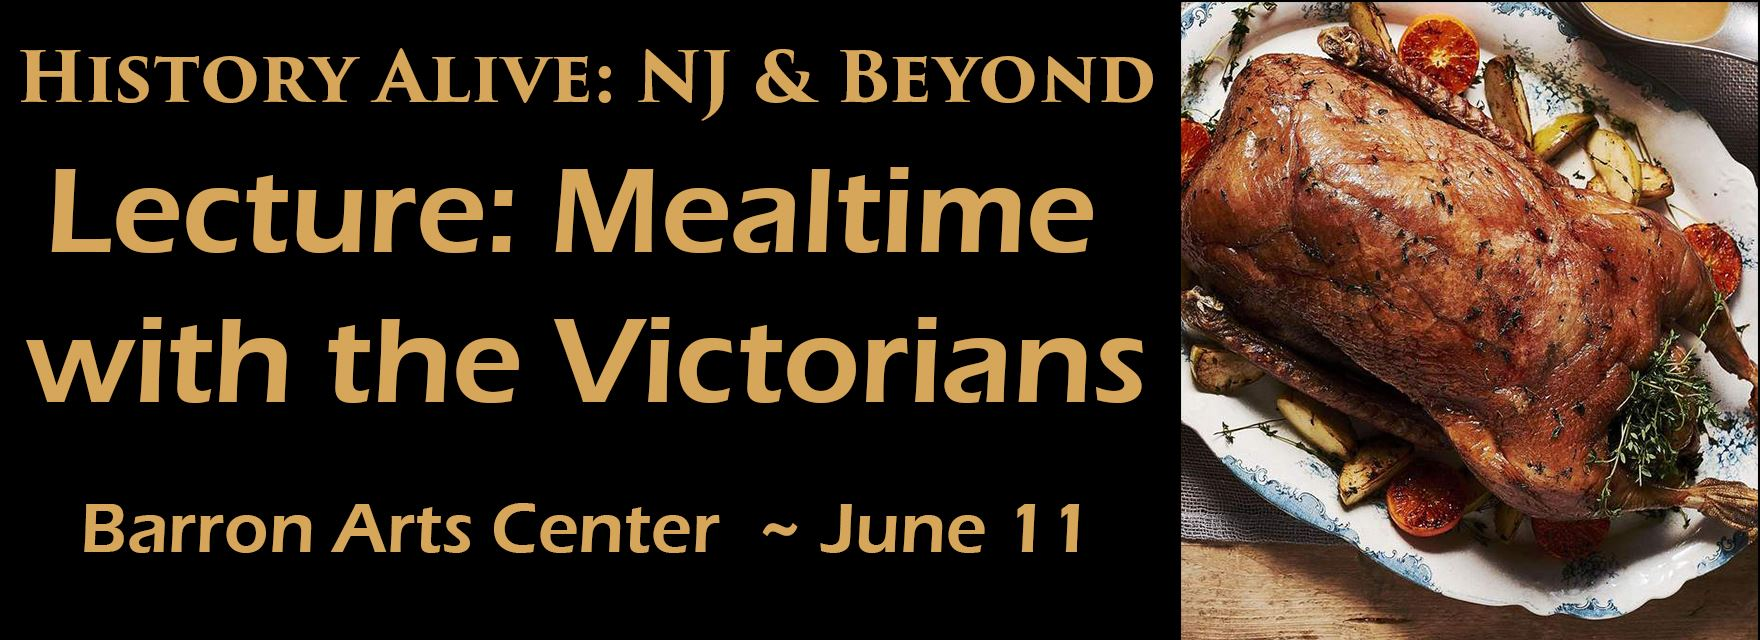 Lecture: Mealtimes with the Victorians